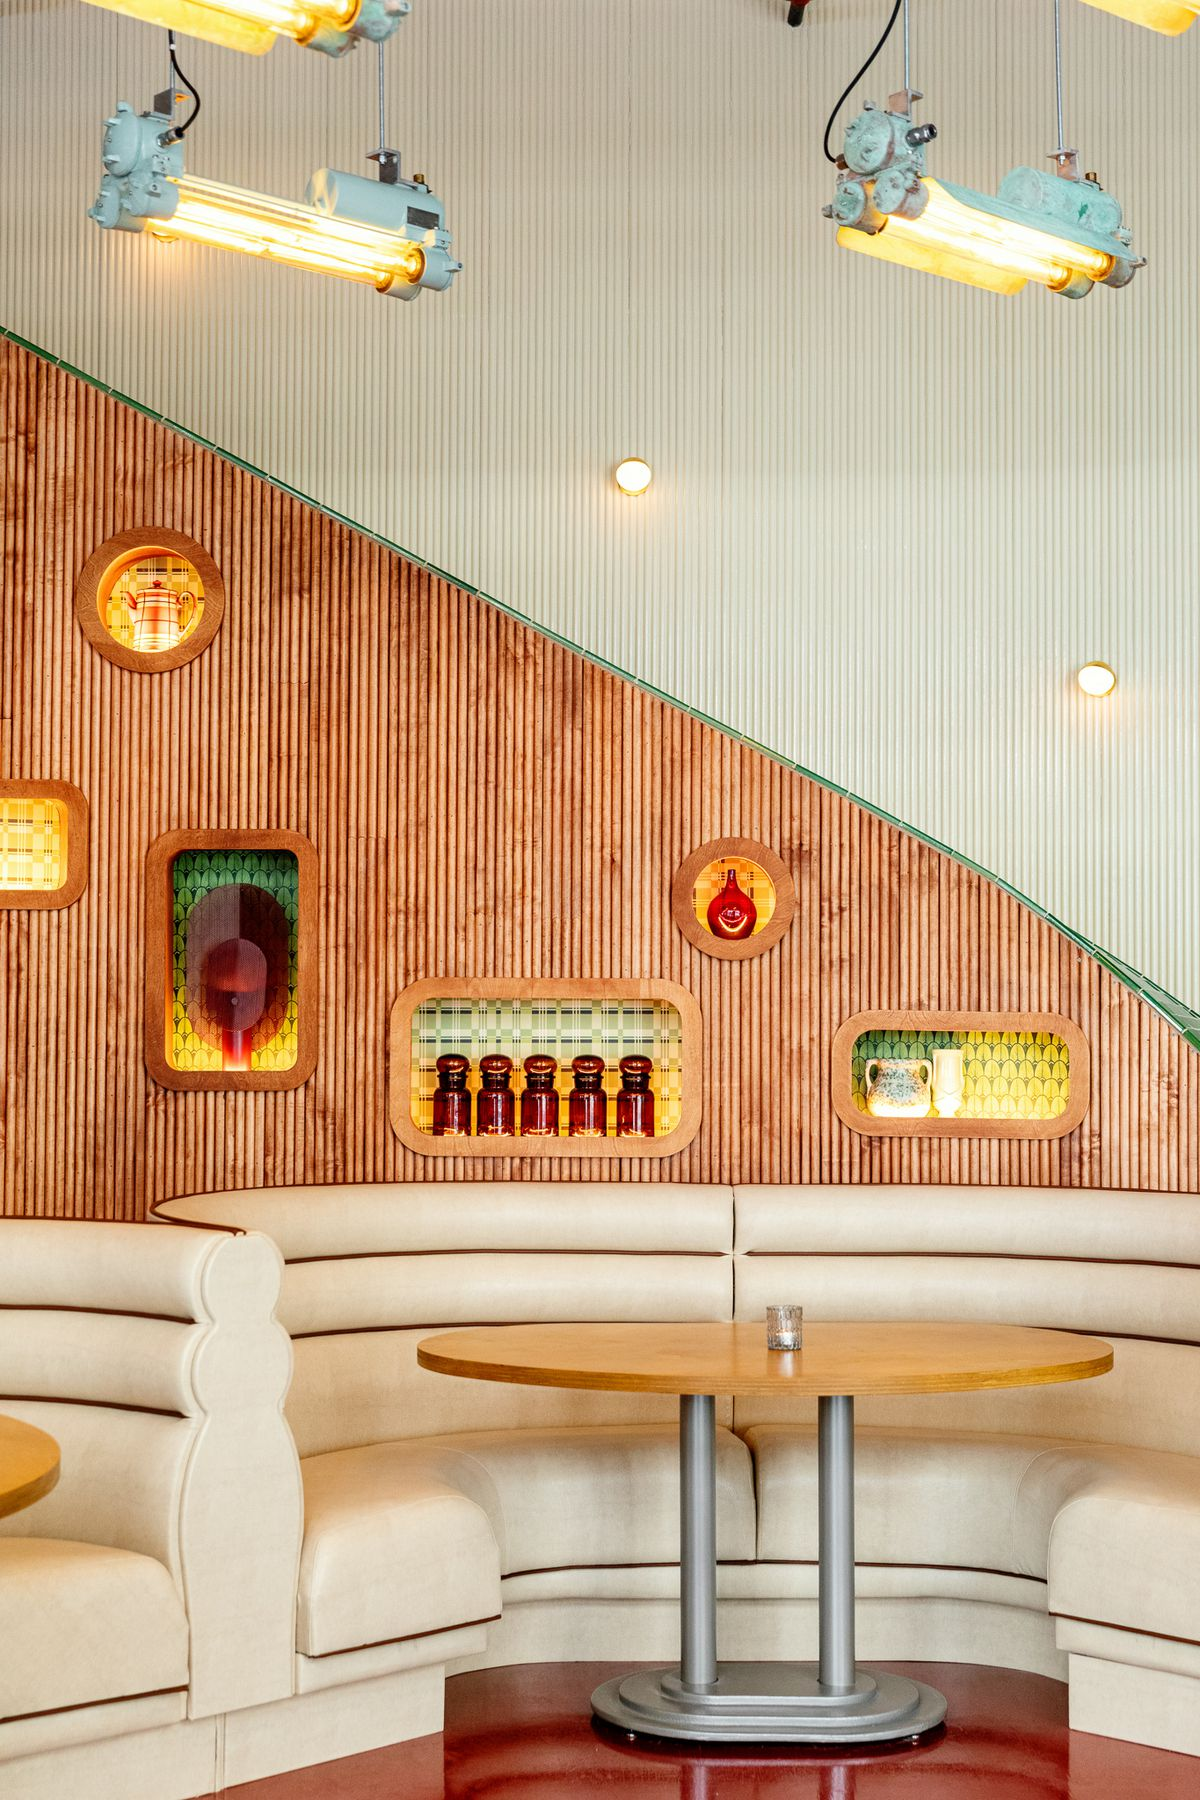 Two leather dining booths with a backdrop of art pieces within cubbies in the wall.